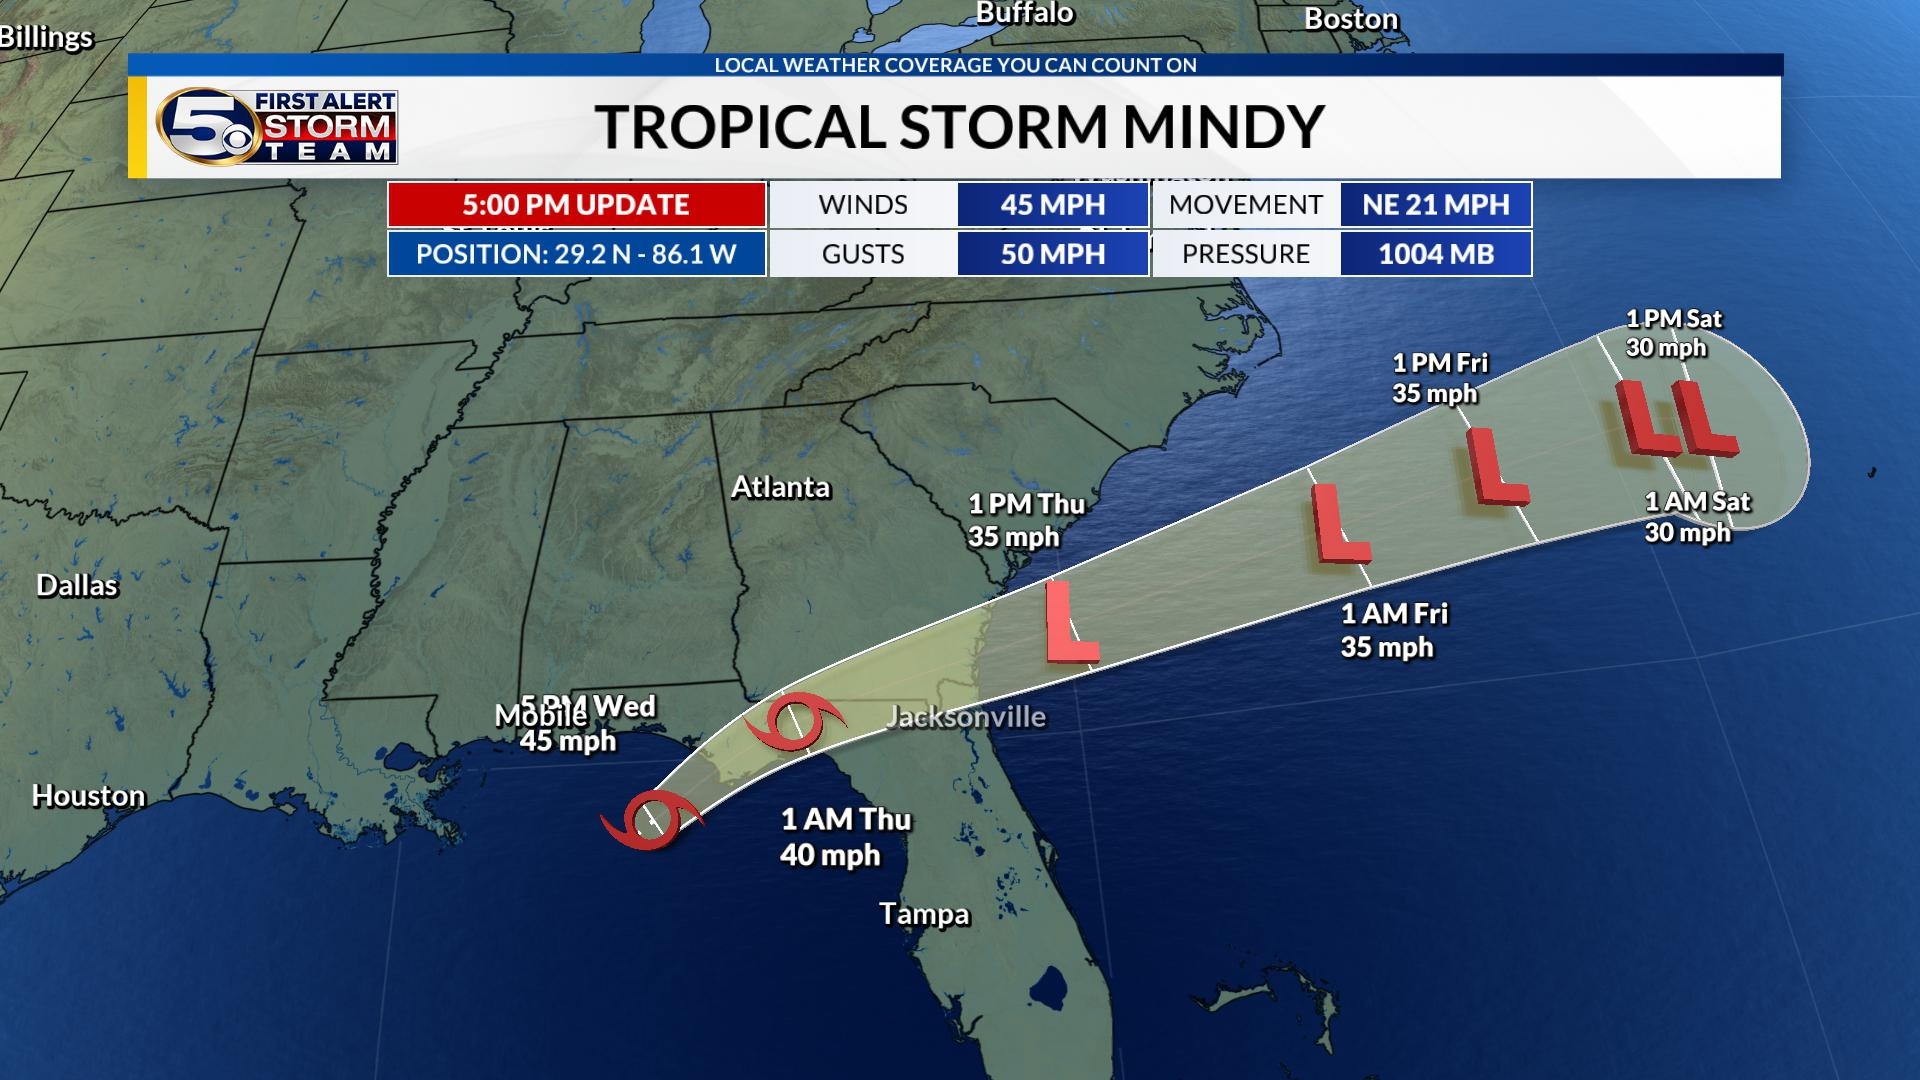 Tropical Storm Mindy forms off the coast of the Florida Panhandle